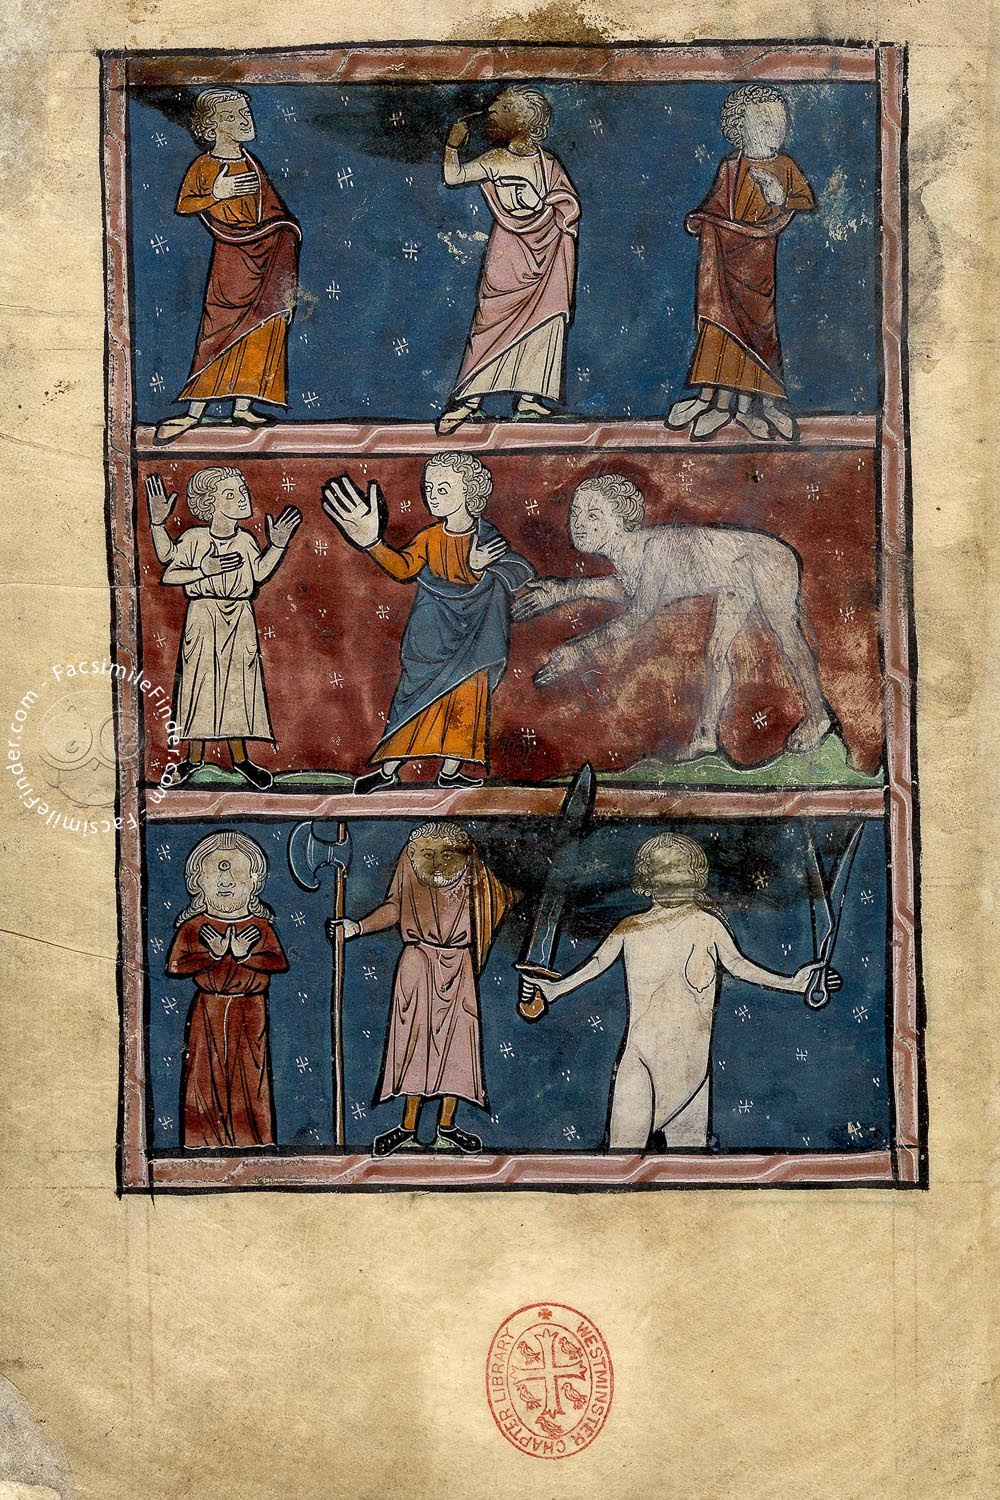 Westminster Bestiary, MS 22: not only animals, but also weird human figures in the Westminster Bestiary